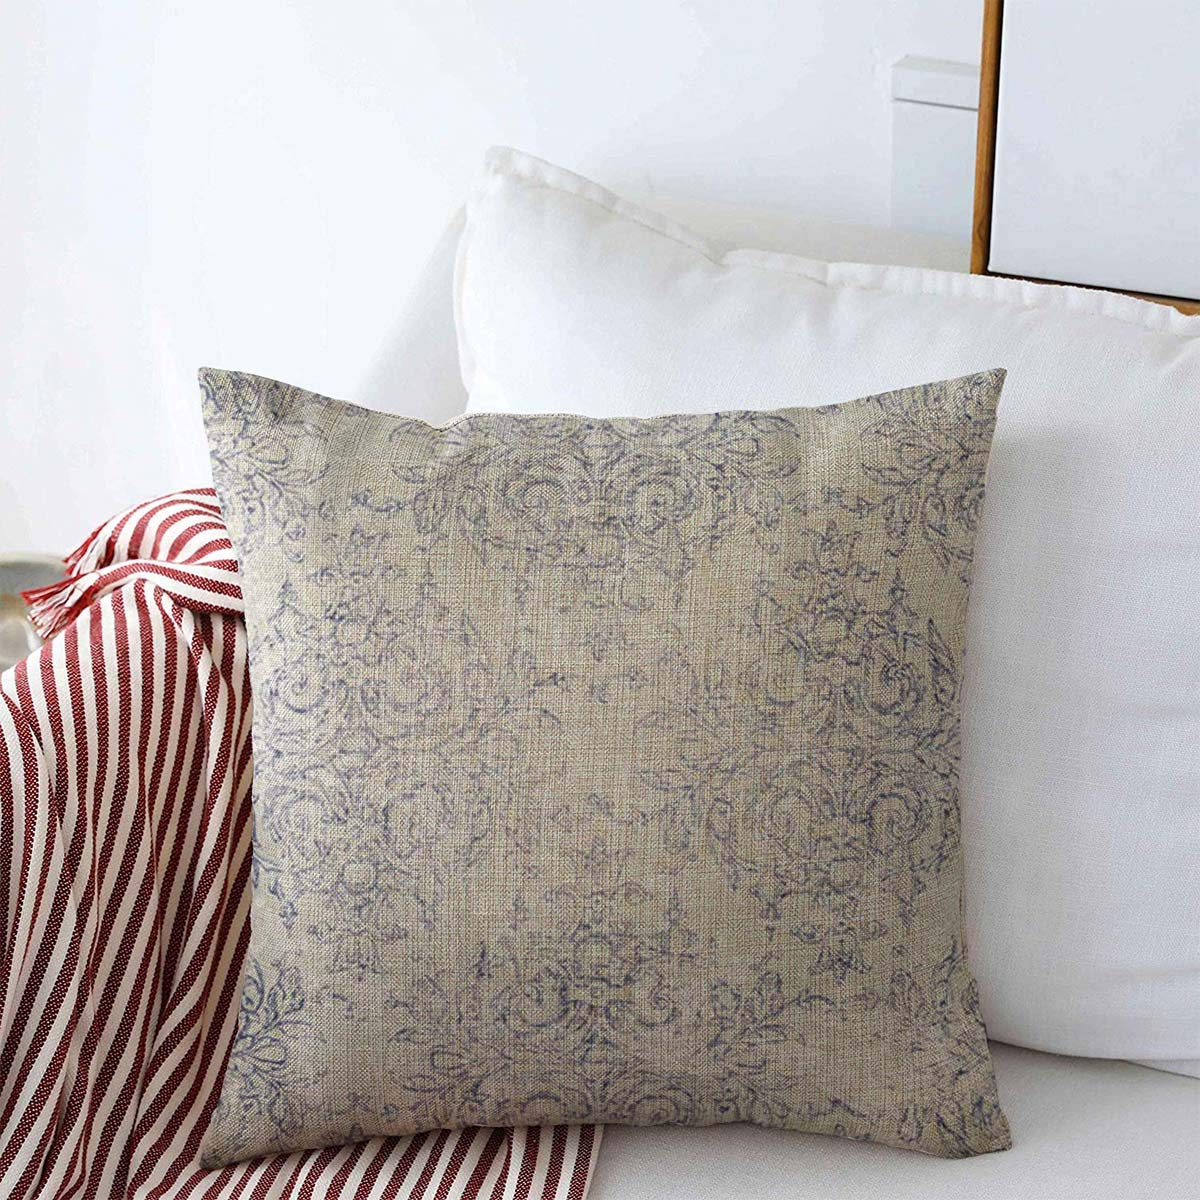 """Starowas Throw Pillow Covers 16"""" x 16"""" Antiqued Blue Taupe Navy Toile French White Beige Delicate Filigree Aged Antique Dark Design Cushion Pillowcase Linen Cases for Winter Home Decoration"""